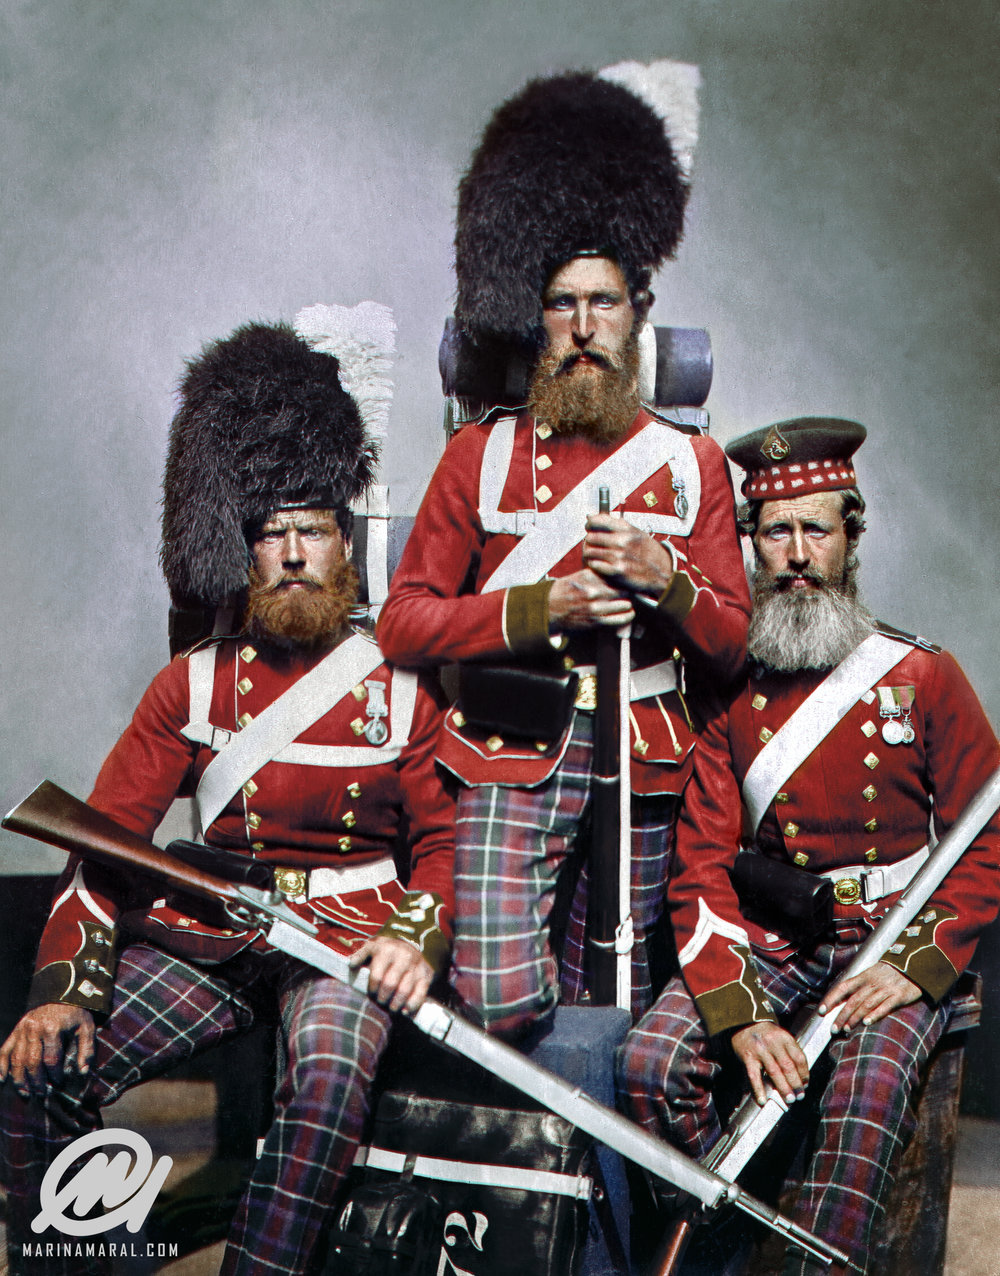 Scottish soldiers who served in the Crimean War, brought to life in colour (Marina Amaral)